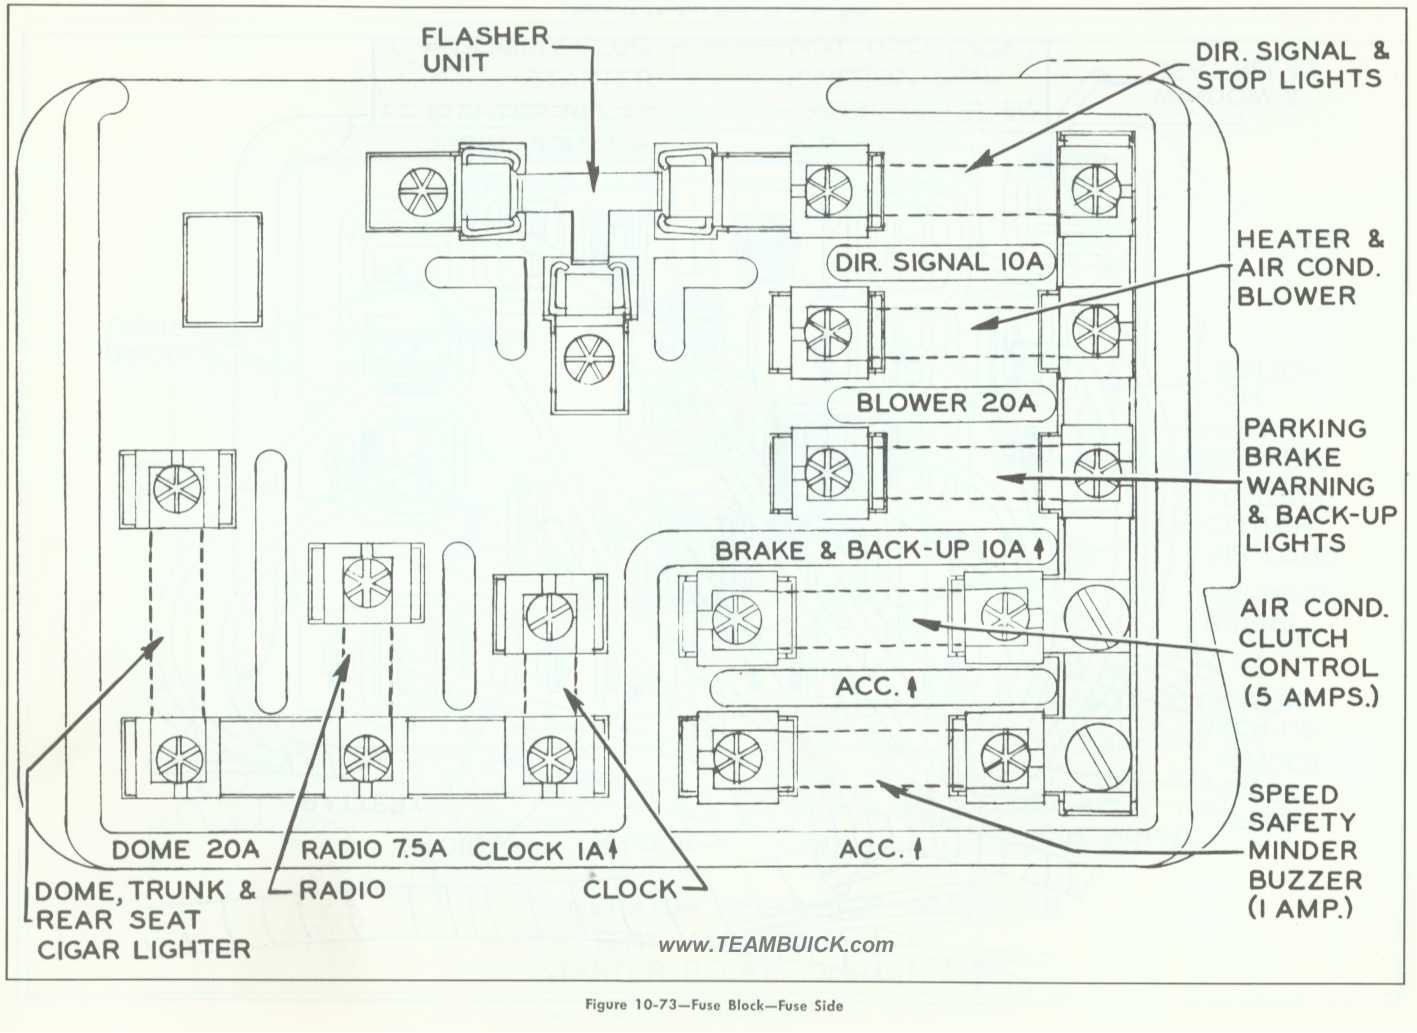 wiring harness for 1964 buick riviera